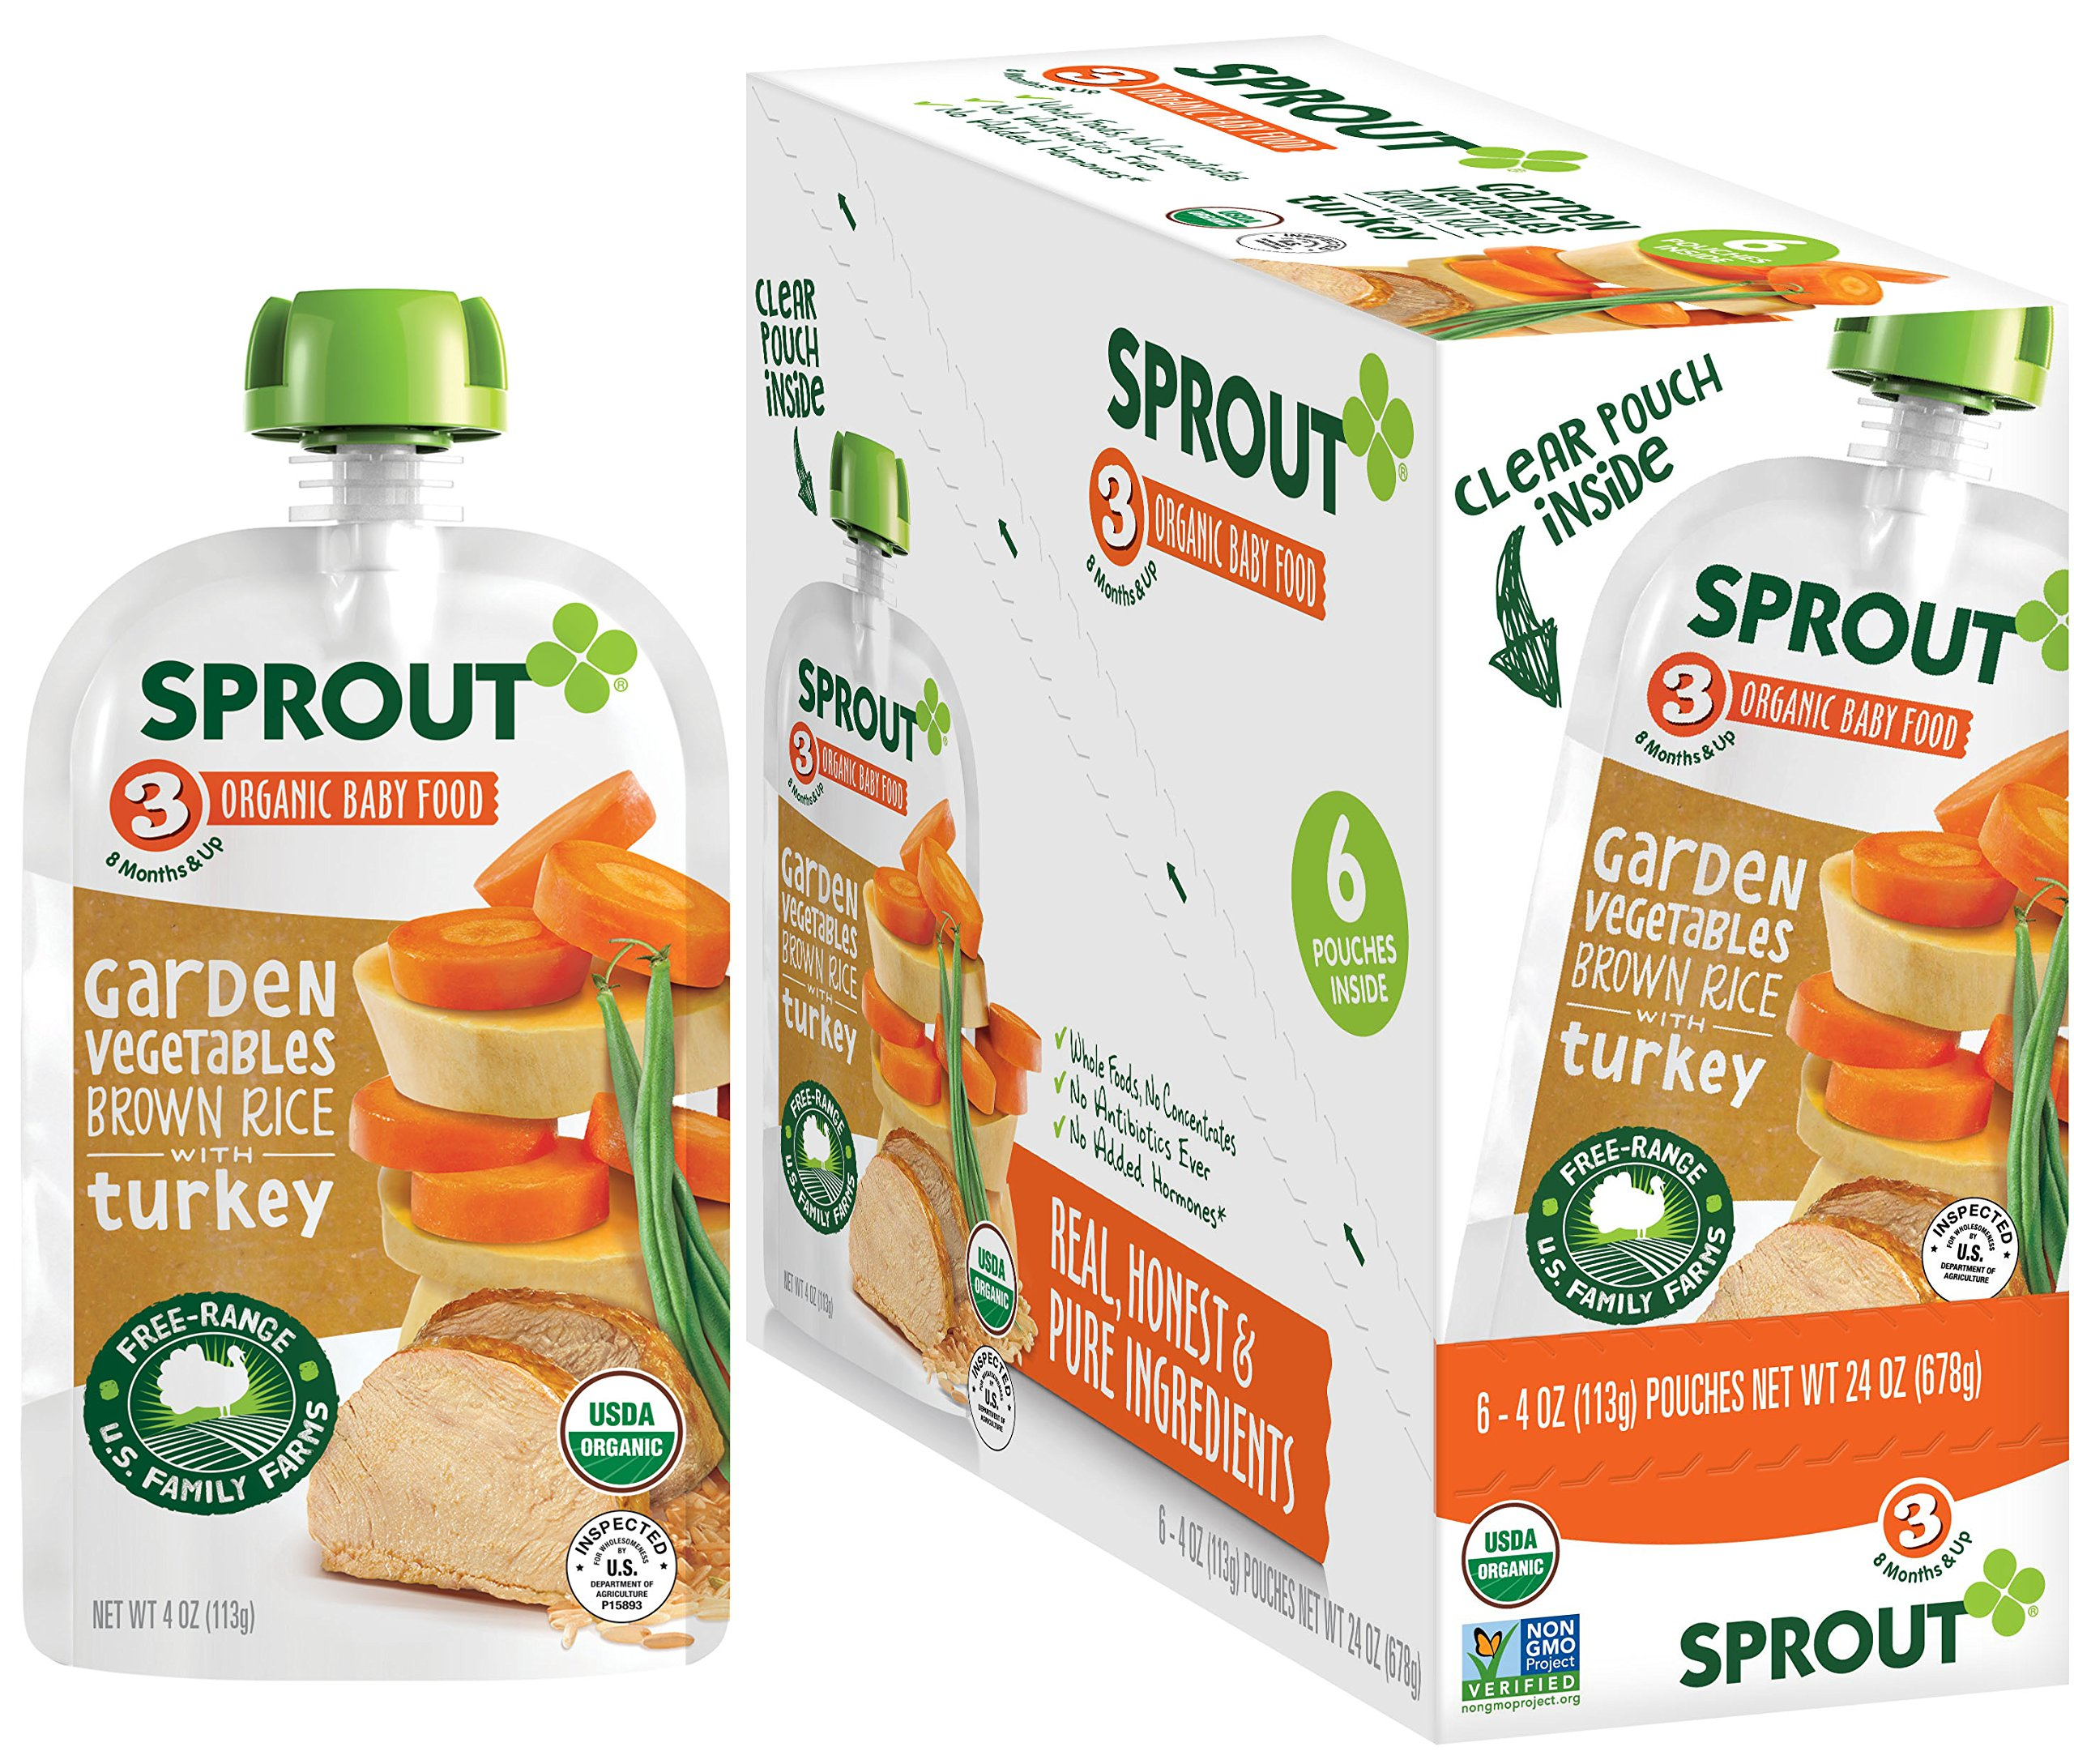 Sprout Organic Stage 3 Baby Food Pouches, Garden Vegetables Brown Rice w/ Turkey, 4 Ounce (Pack of 6)